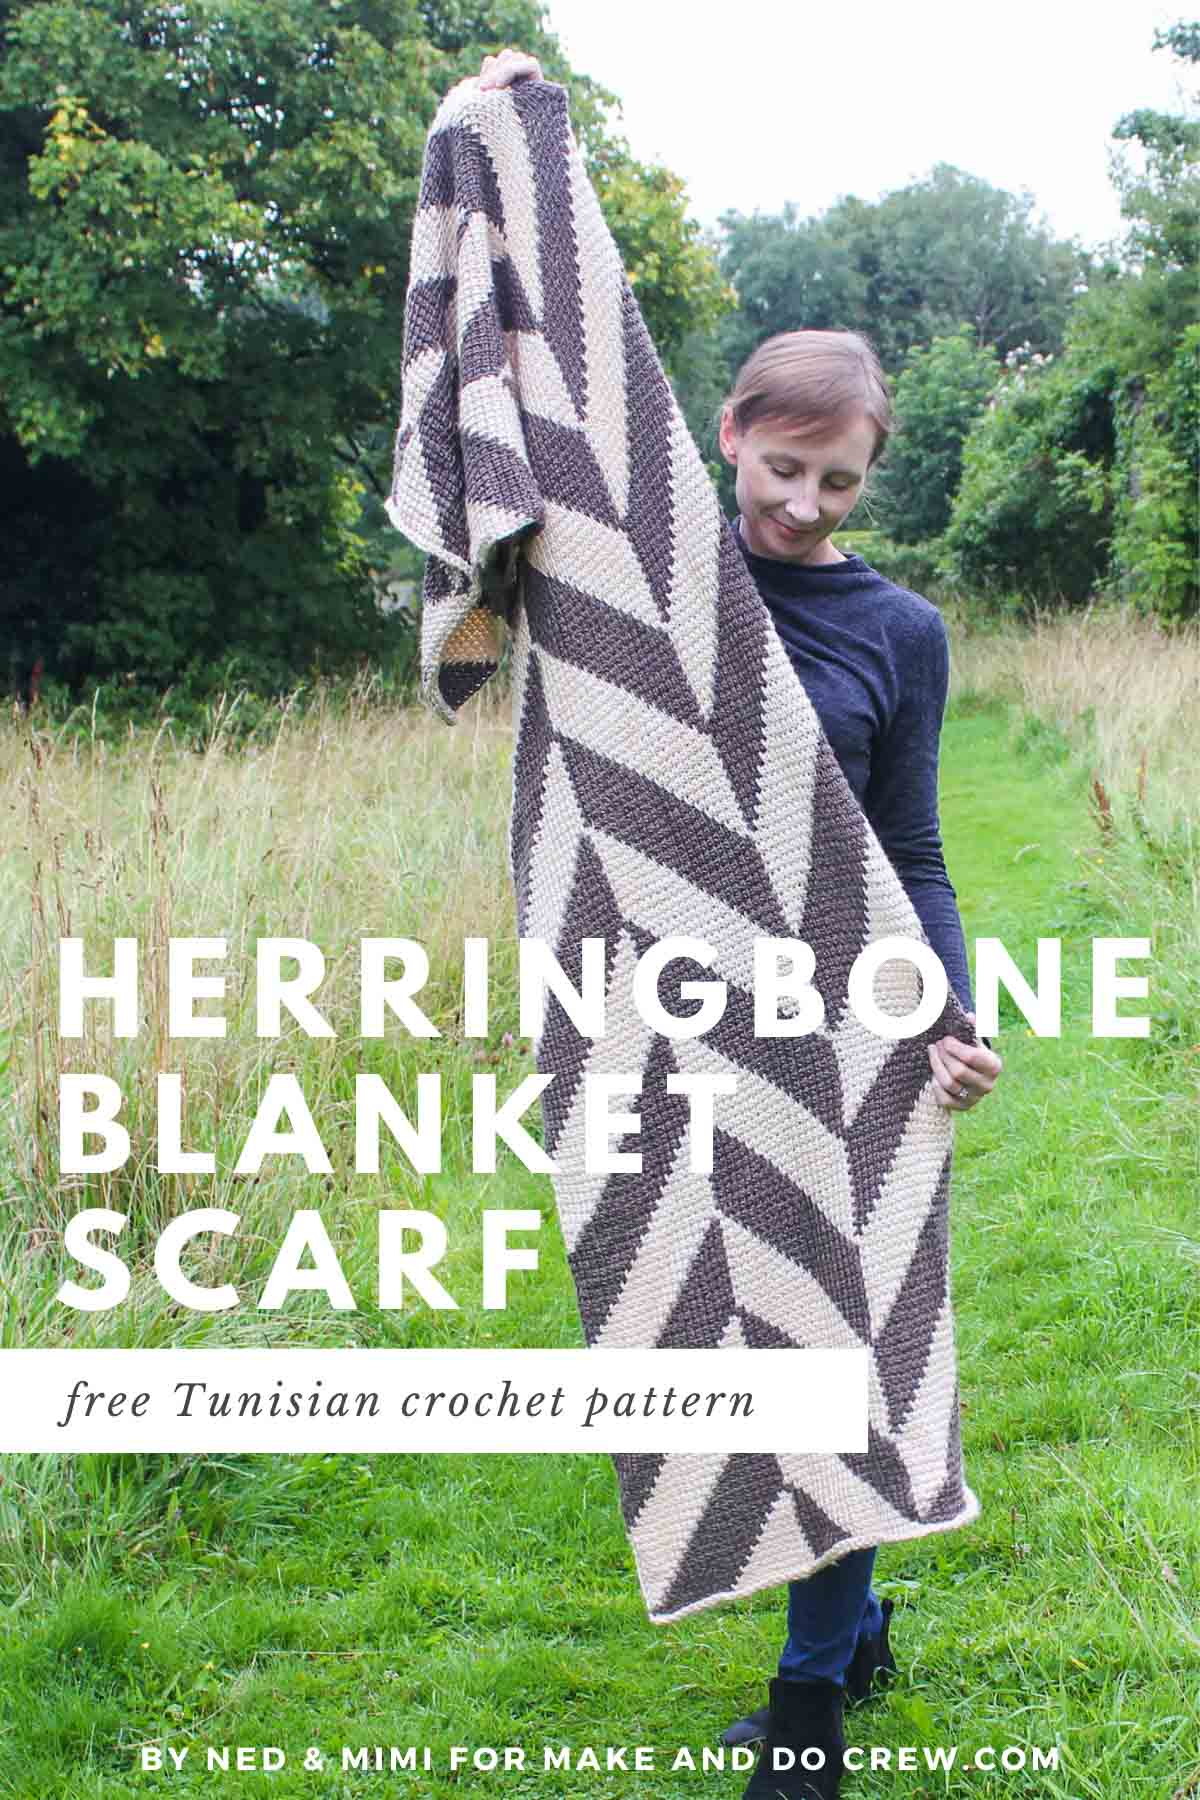 Warm and cozy! This is a picture of a woman with short, light brown hair standing in a field of green. She is displaying a Tunisian crochet blanket scarf. The scarf is made from 3 panels of Tunisian crochet to create a Herringbone pattern.